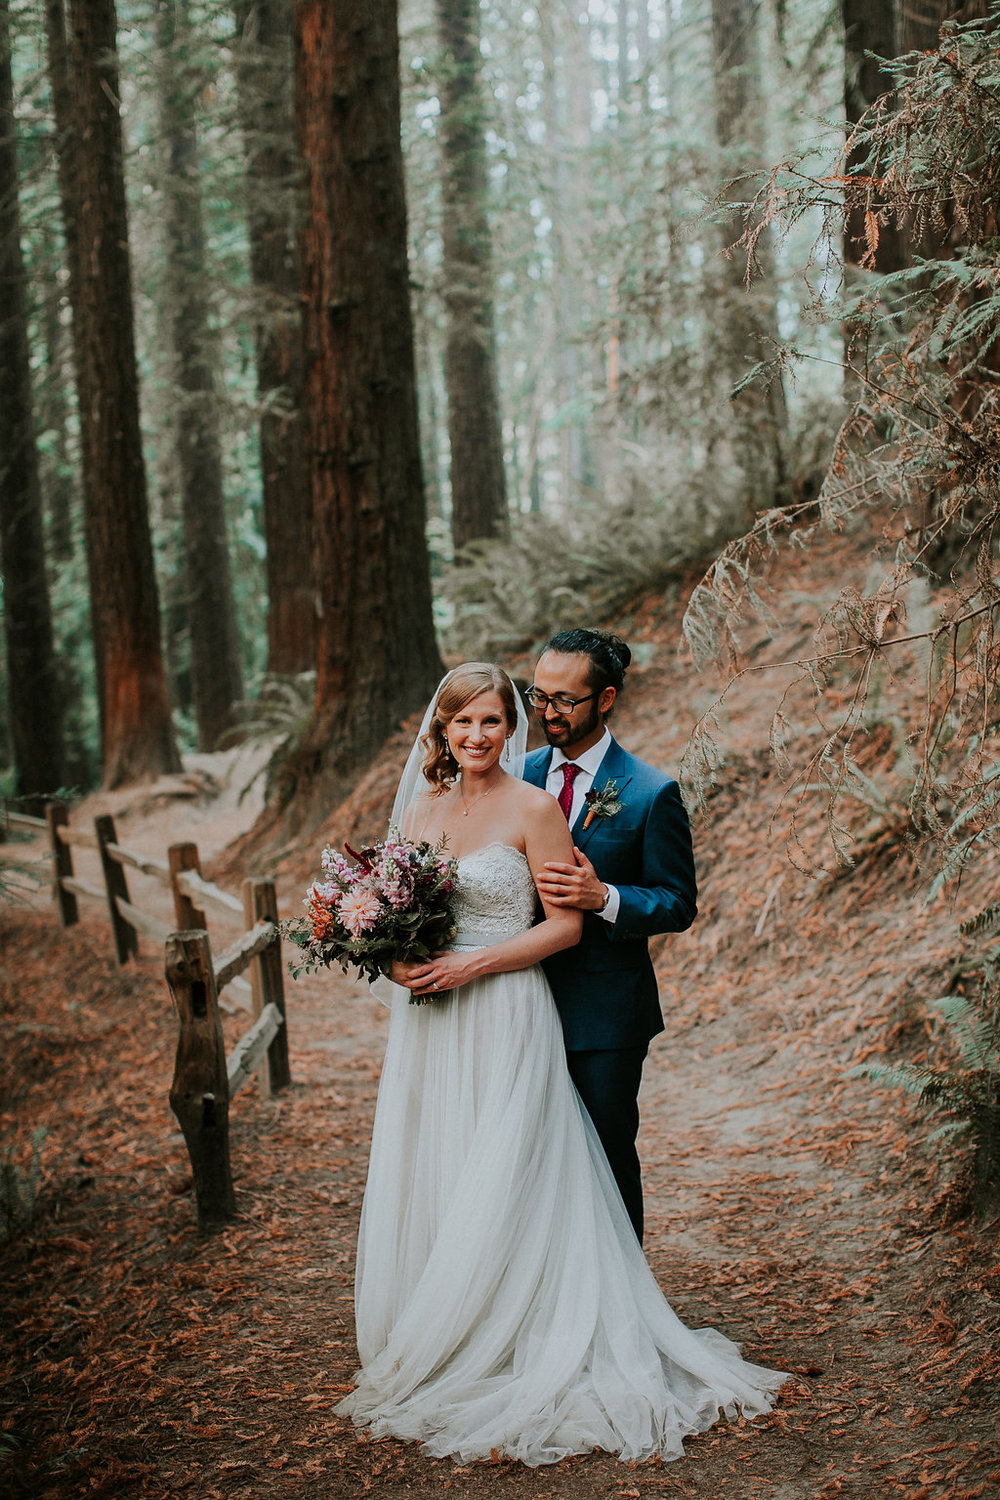 Small wedding at Hoyt Arboretum